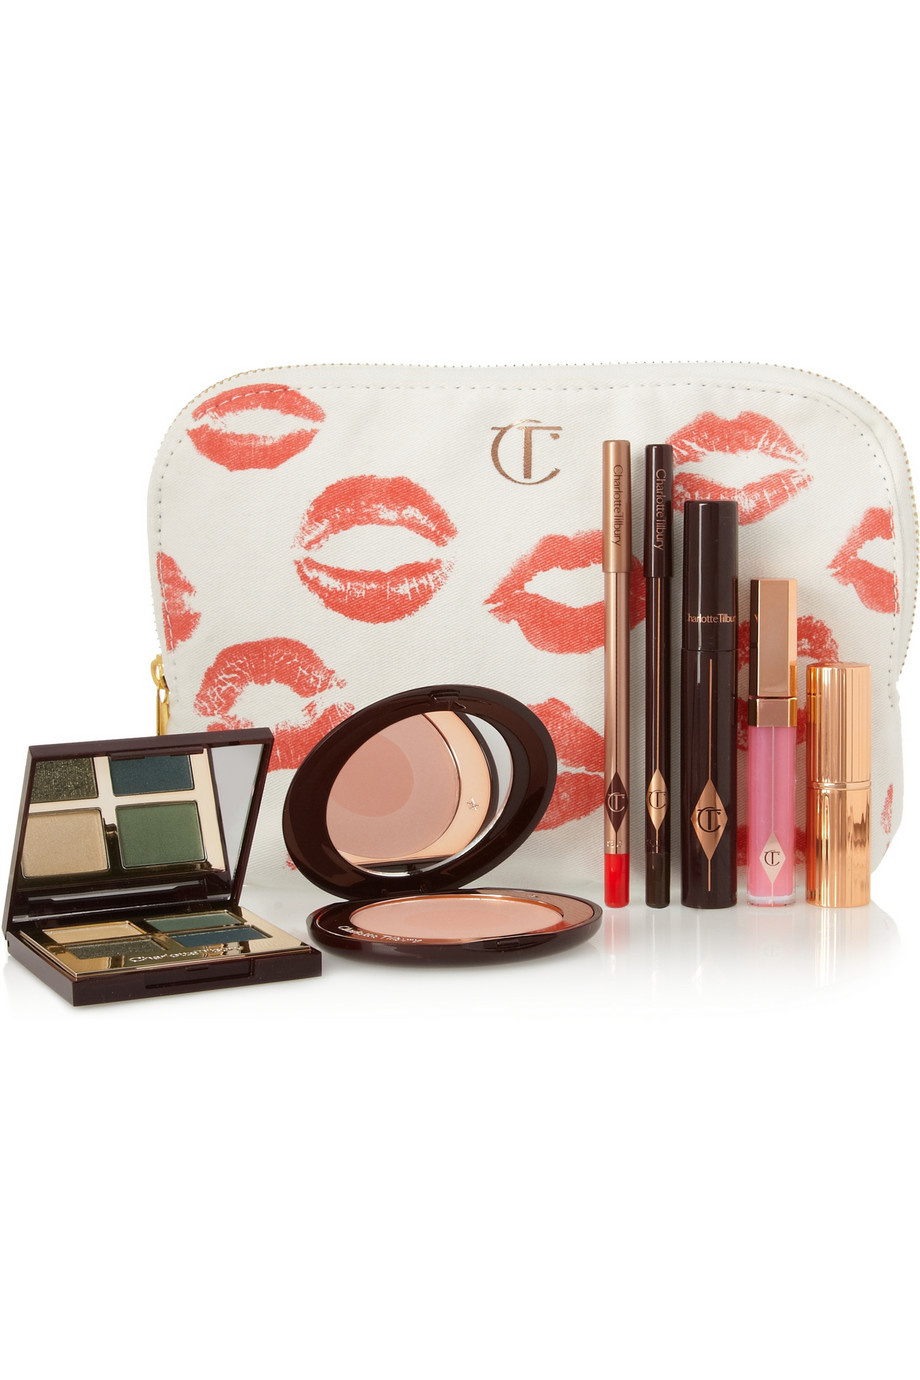 Charlotte Tilbury☆The Rebel☆豪華メイクアップ7点セット☆